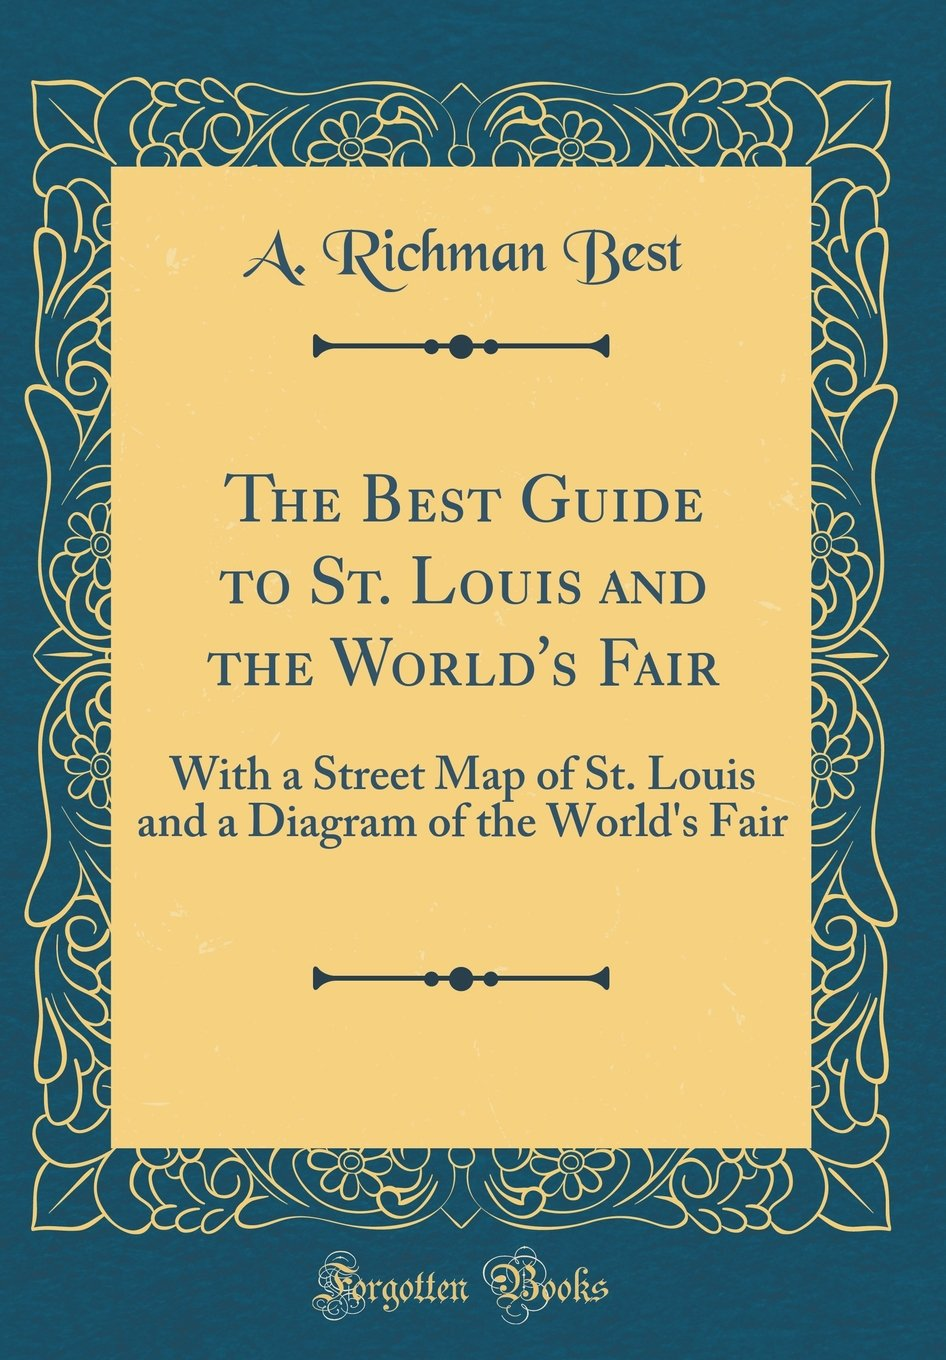 Download The Best Guide to St. Louis and the World's Fair: With a Street Map of St. Louis and a Diagram of the World's Fair (Classic Reprint) ebook